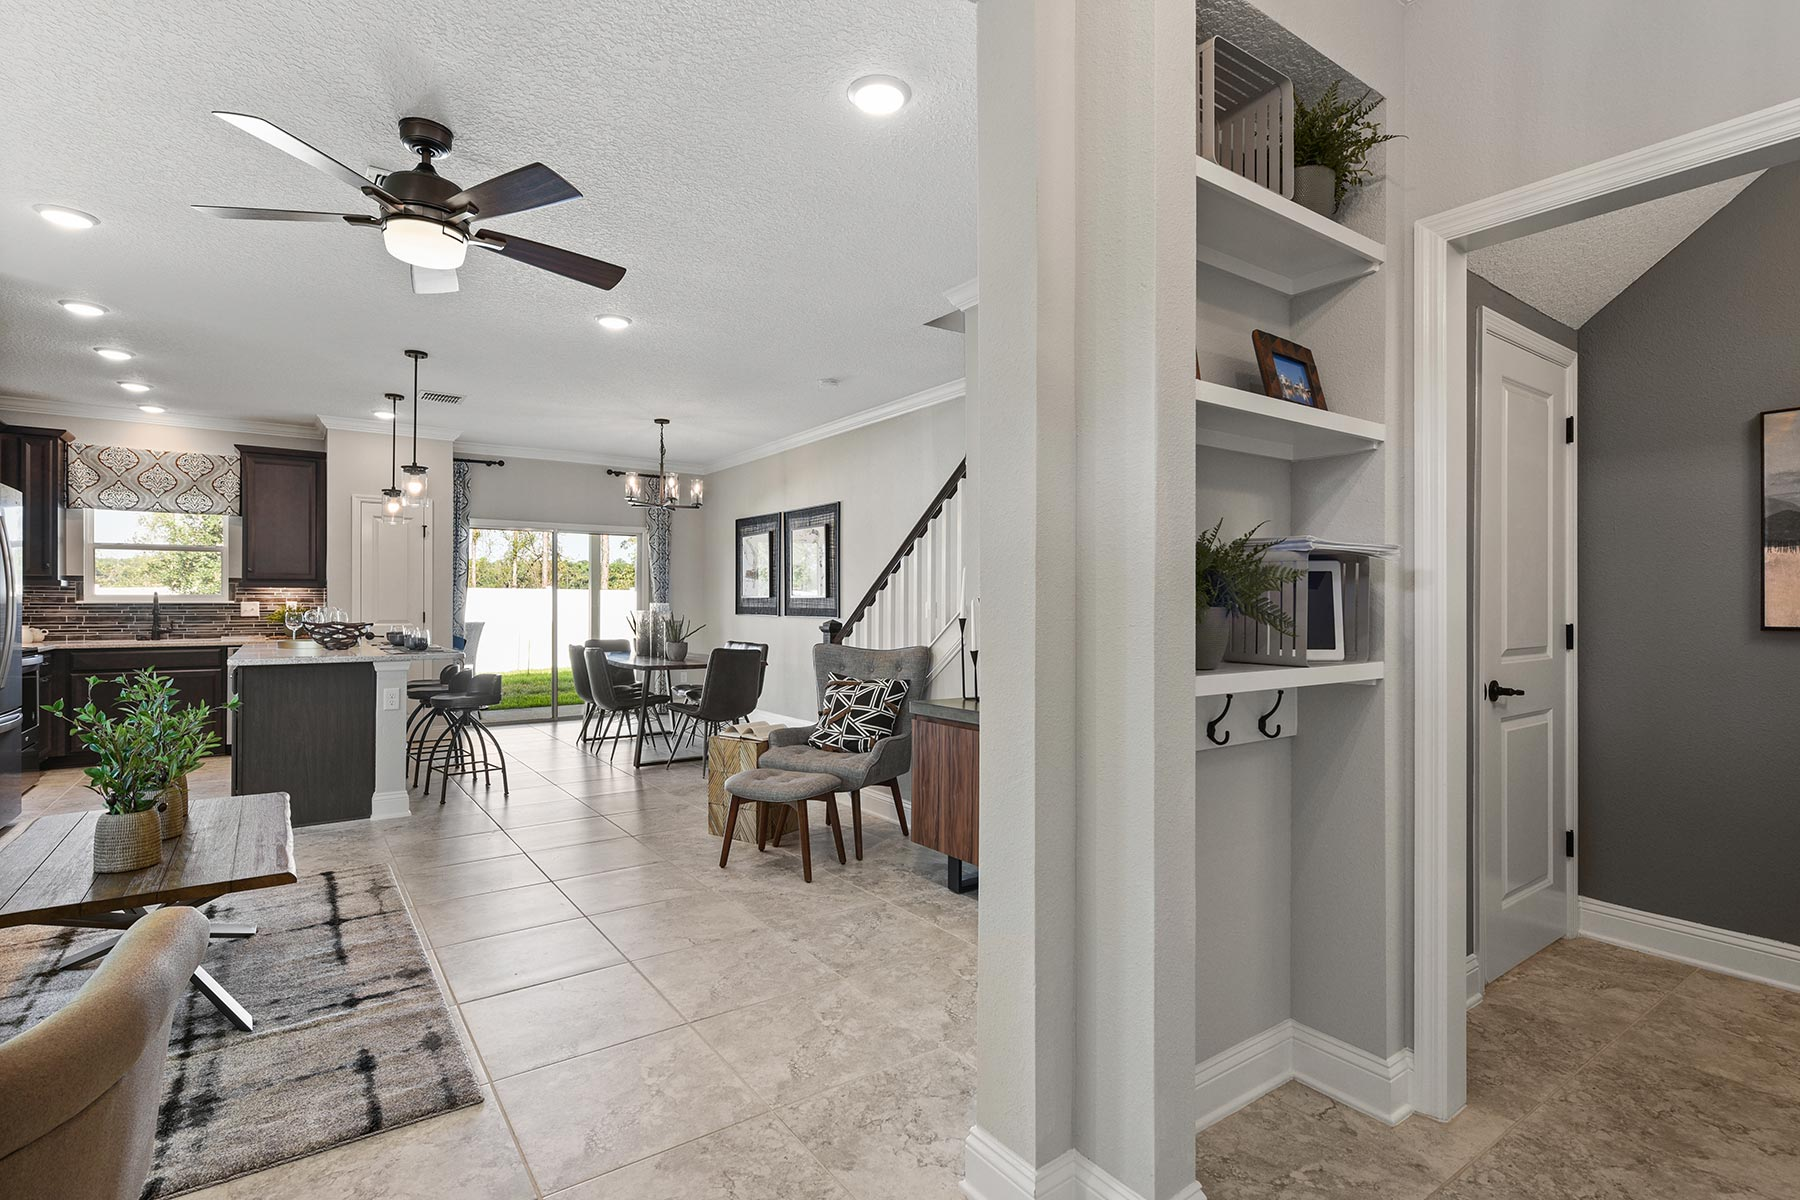 Spring Plan Foyer at Wells Creek in Jacksonville Florida by Mattamy Homes